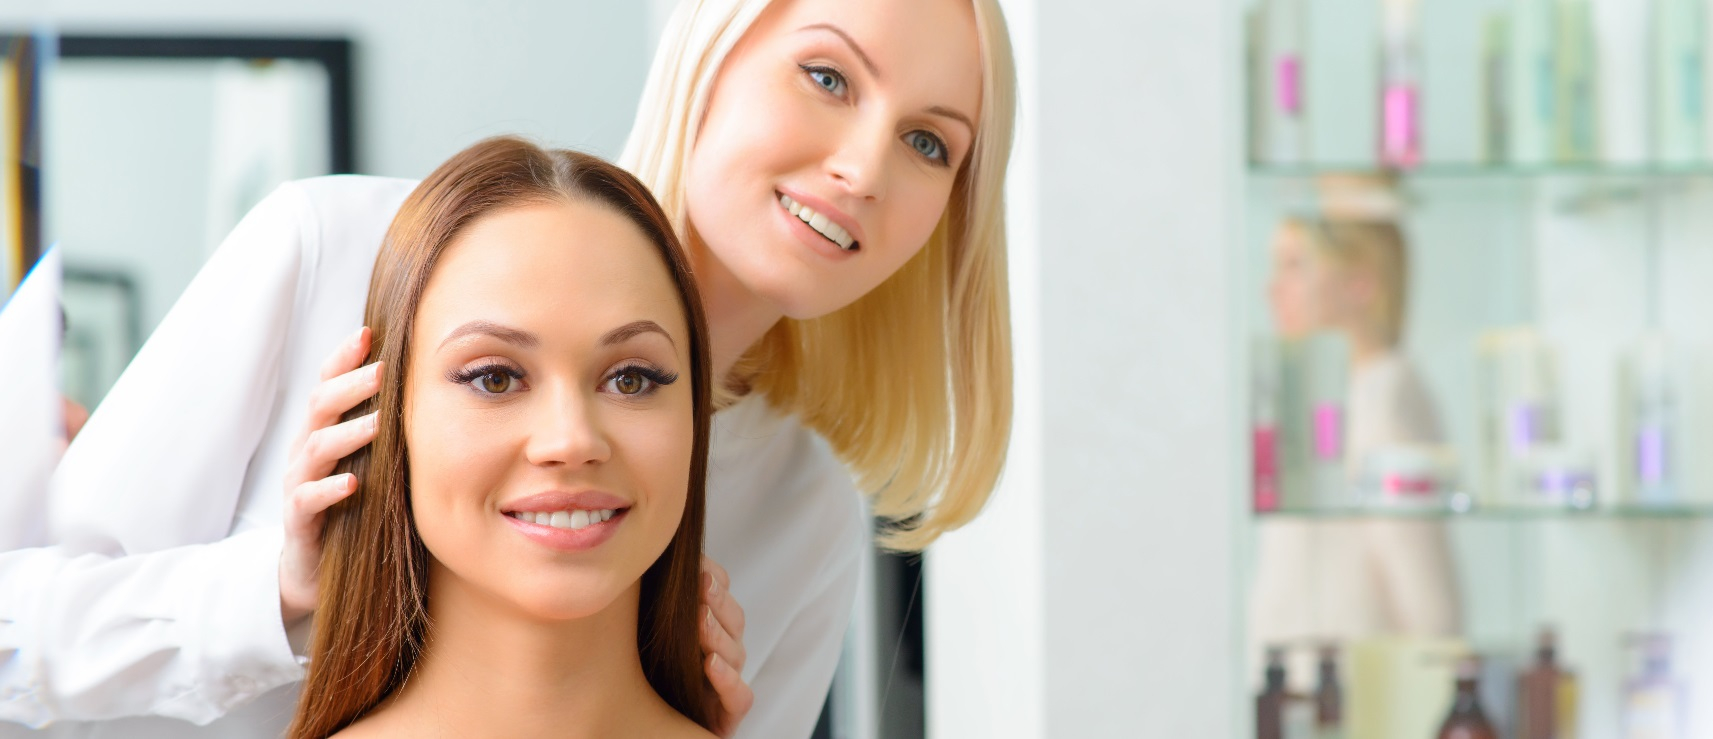 Beautiful Hair and Beauty Salon in Great Beaches Suburb in New South Wales,